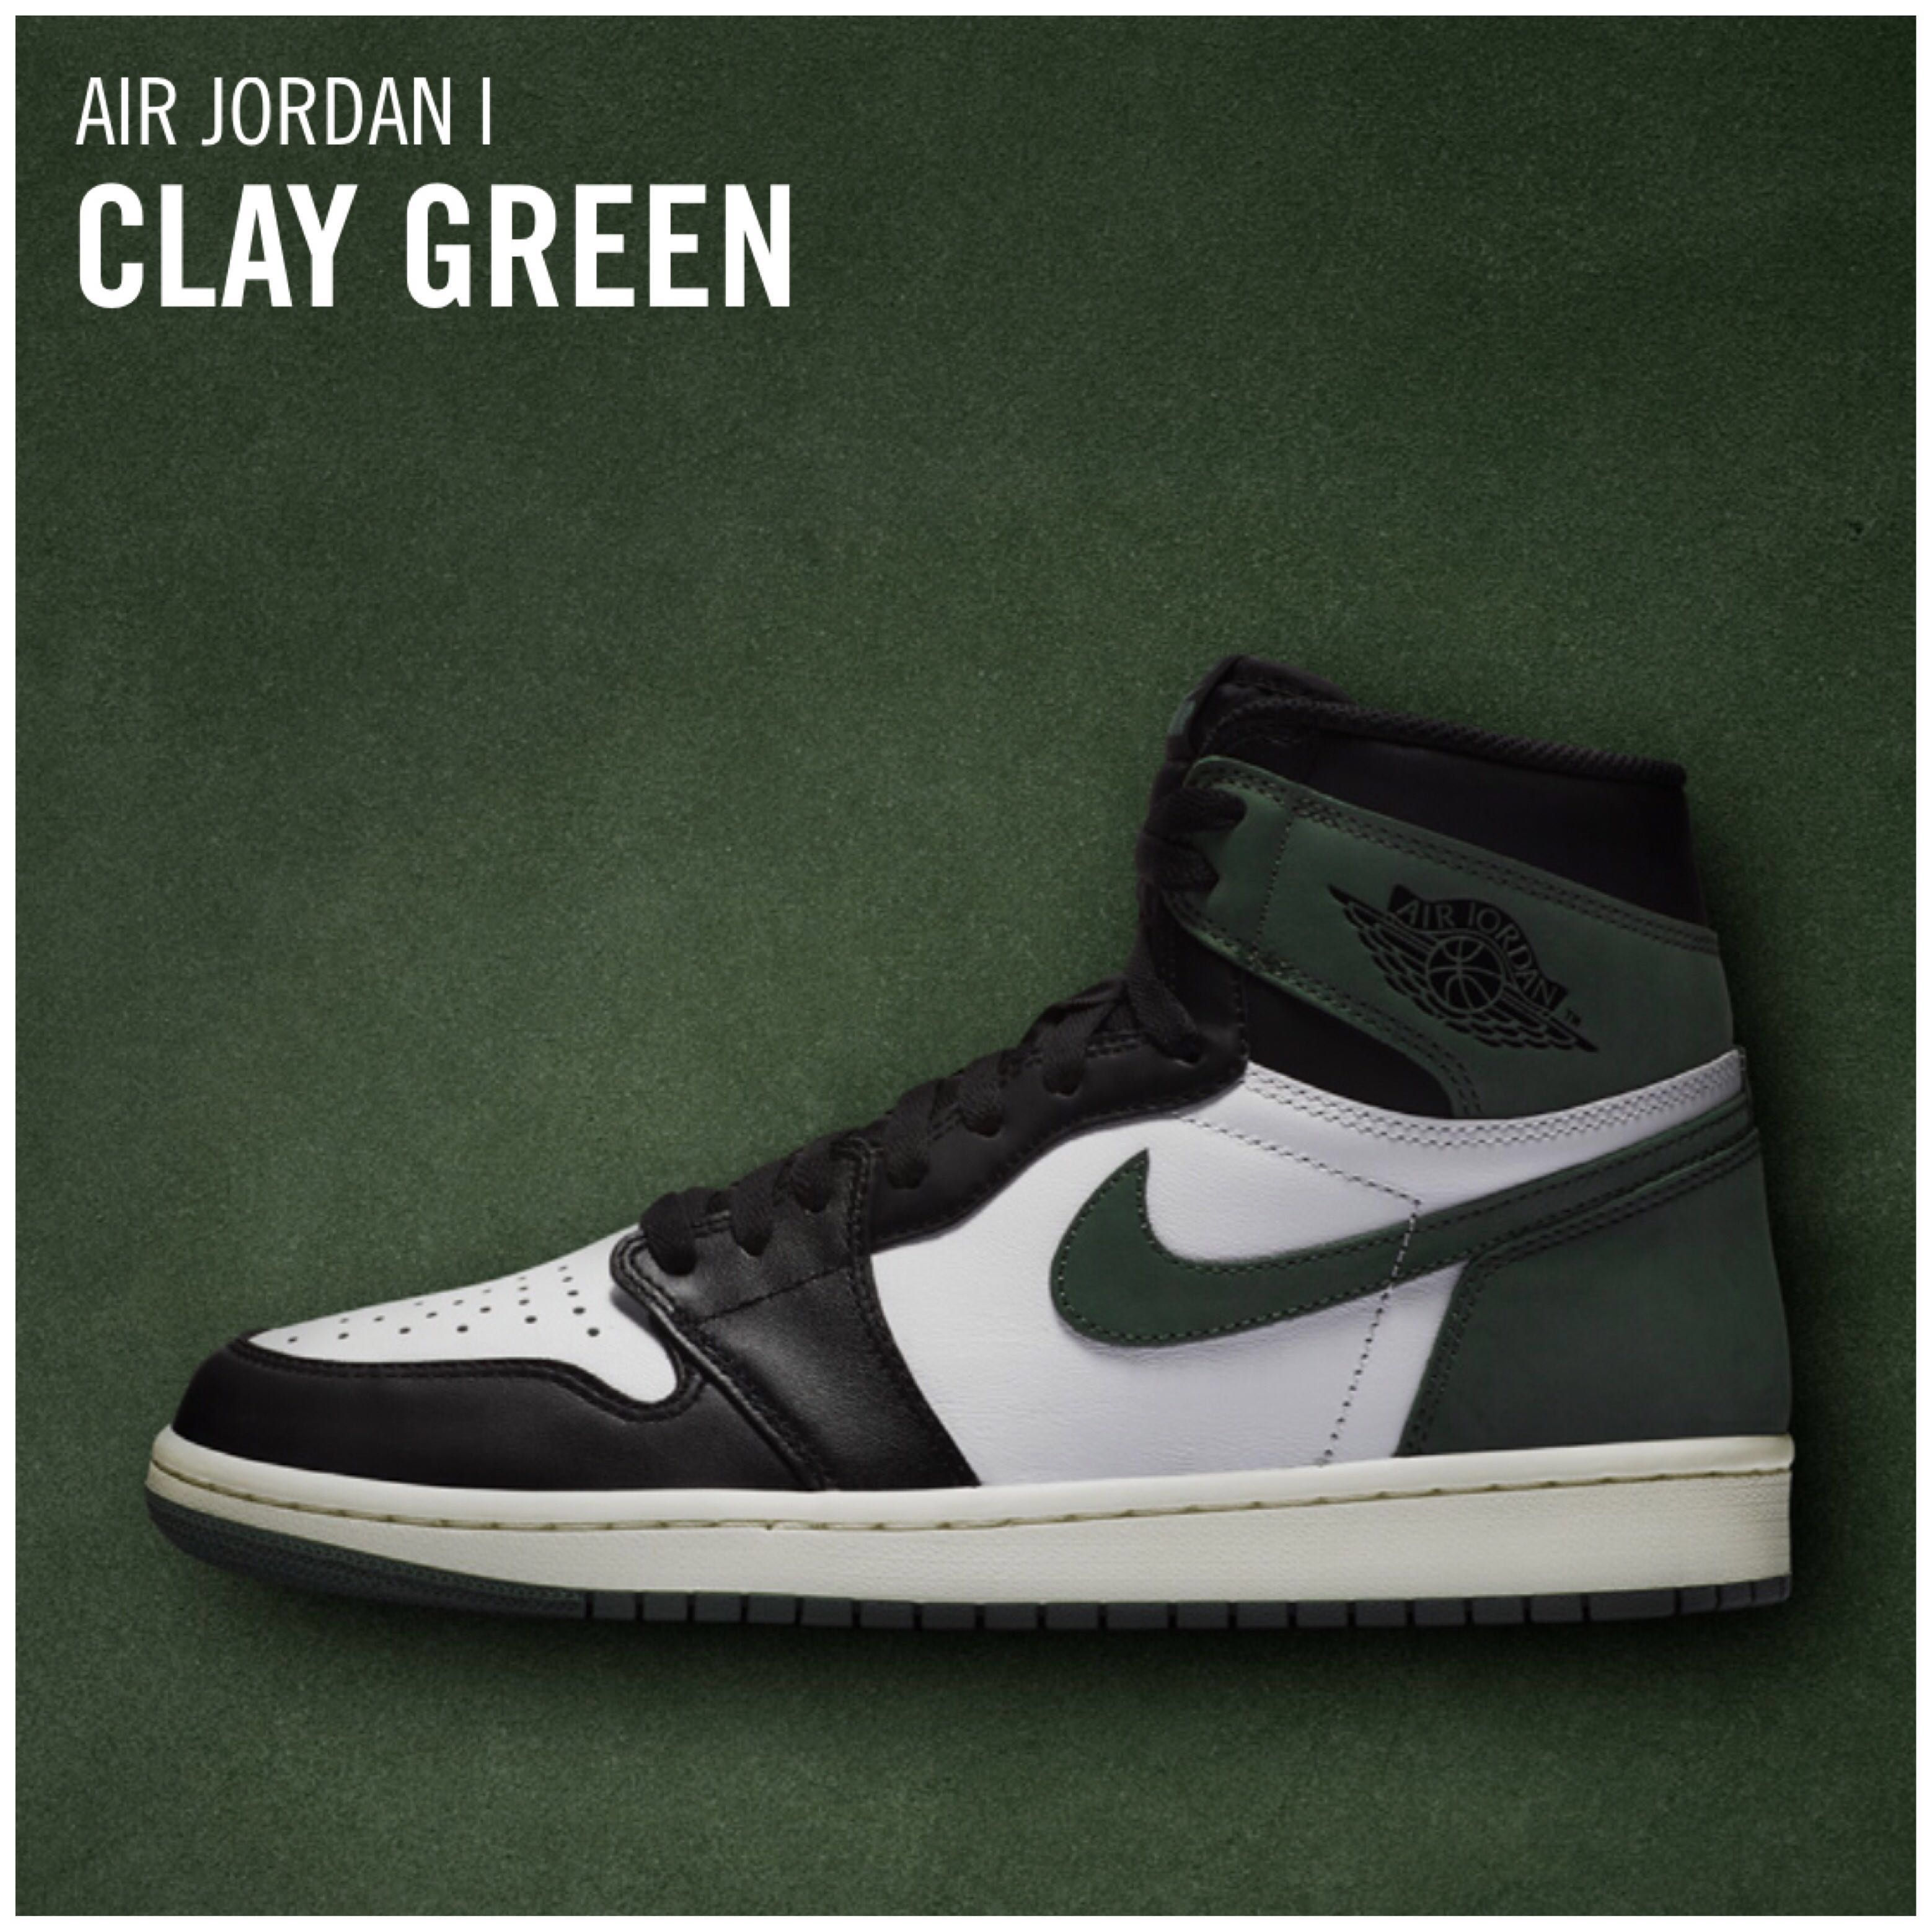 wholesale dealer 229e2 a37d9 Men s Nike Air Jordan 1 Retro High OG CLAY GREEN BEST HAND IN THE GAME  COLLECTION LIMITED QUANTITY, Men s Fashion, Footwear, Sneakers on Carousell